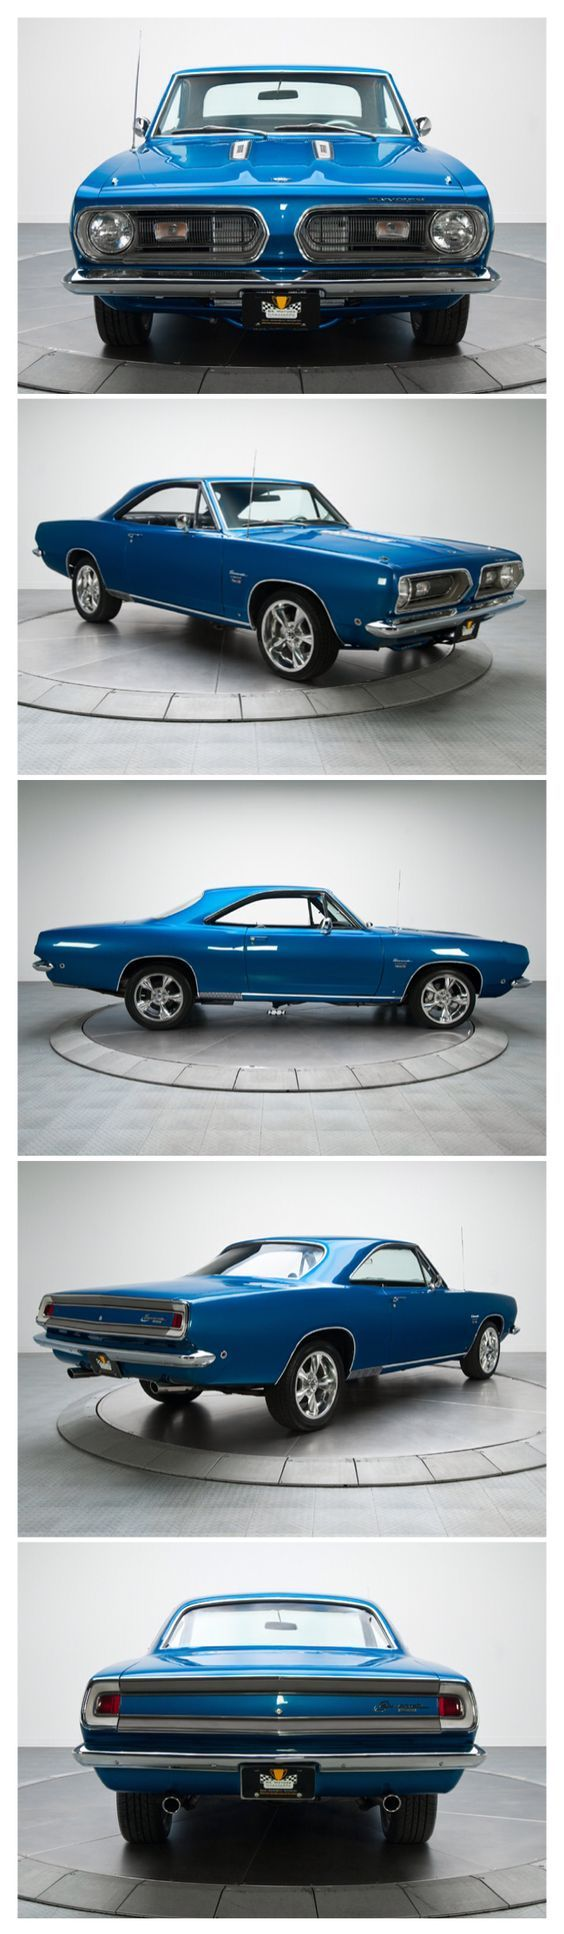 1968 Plymouth Barracuda: